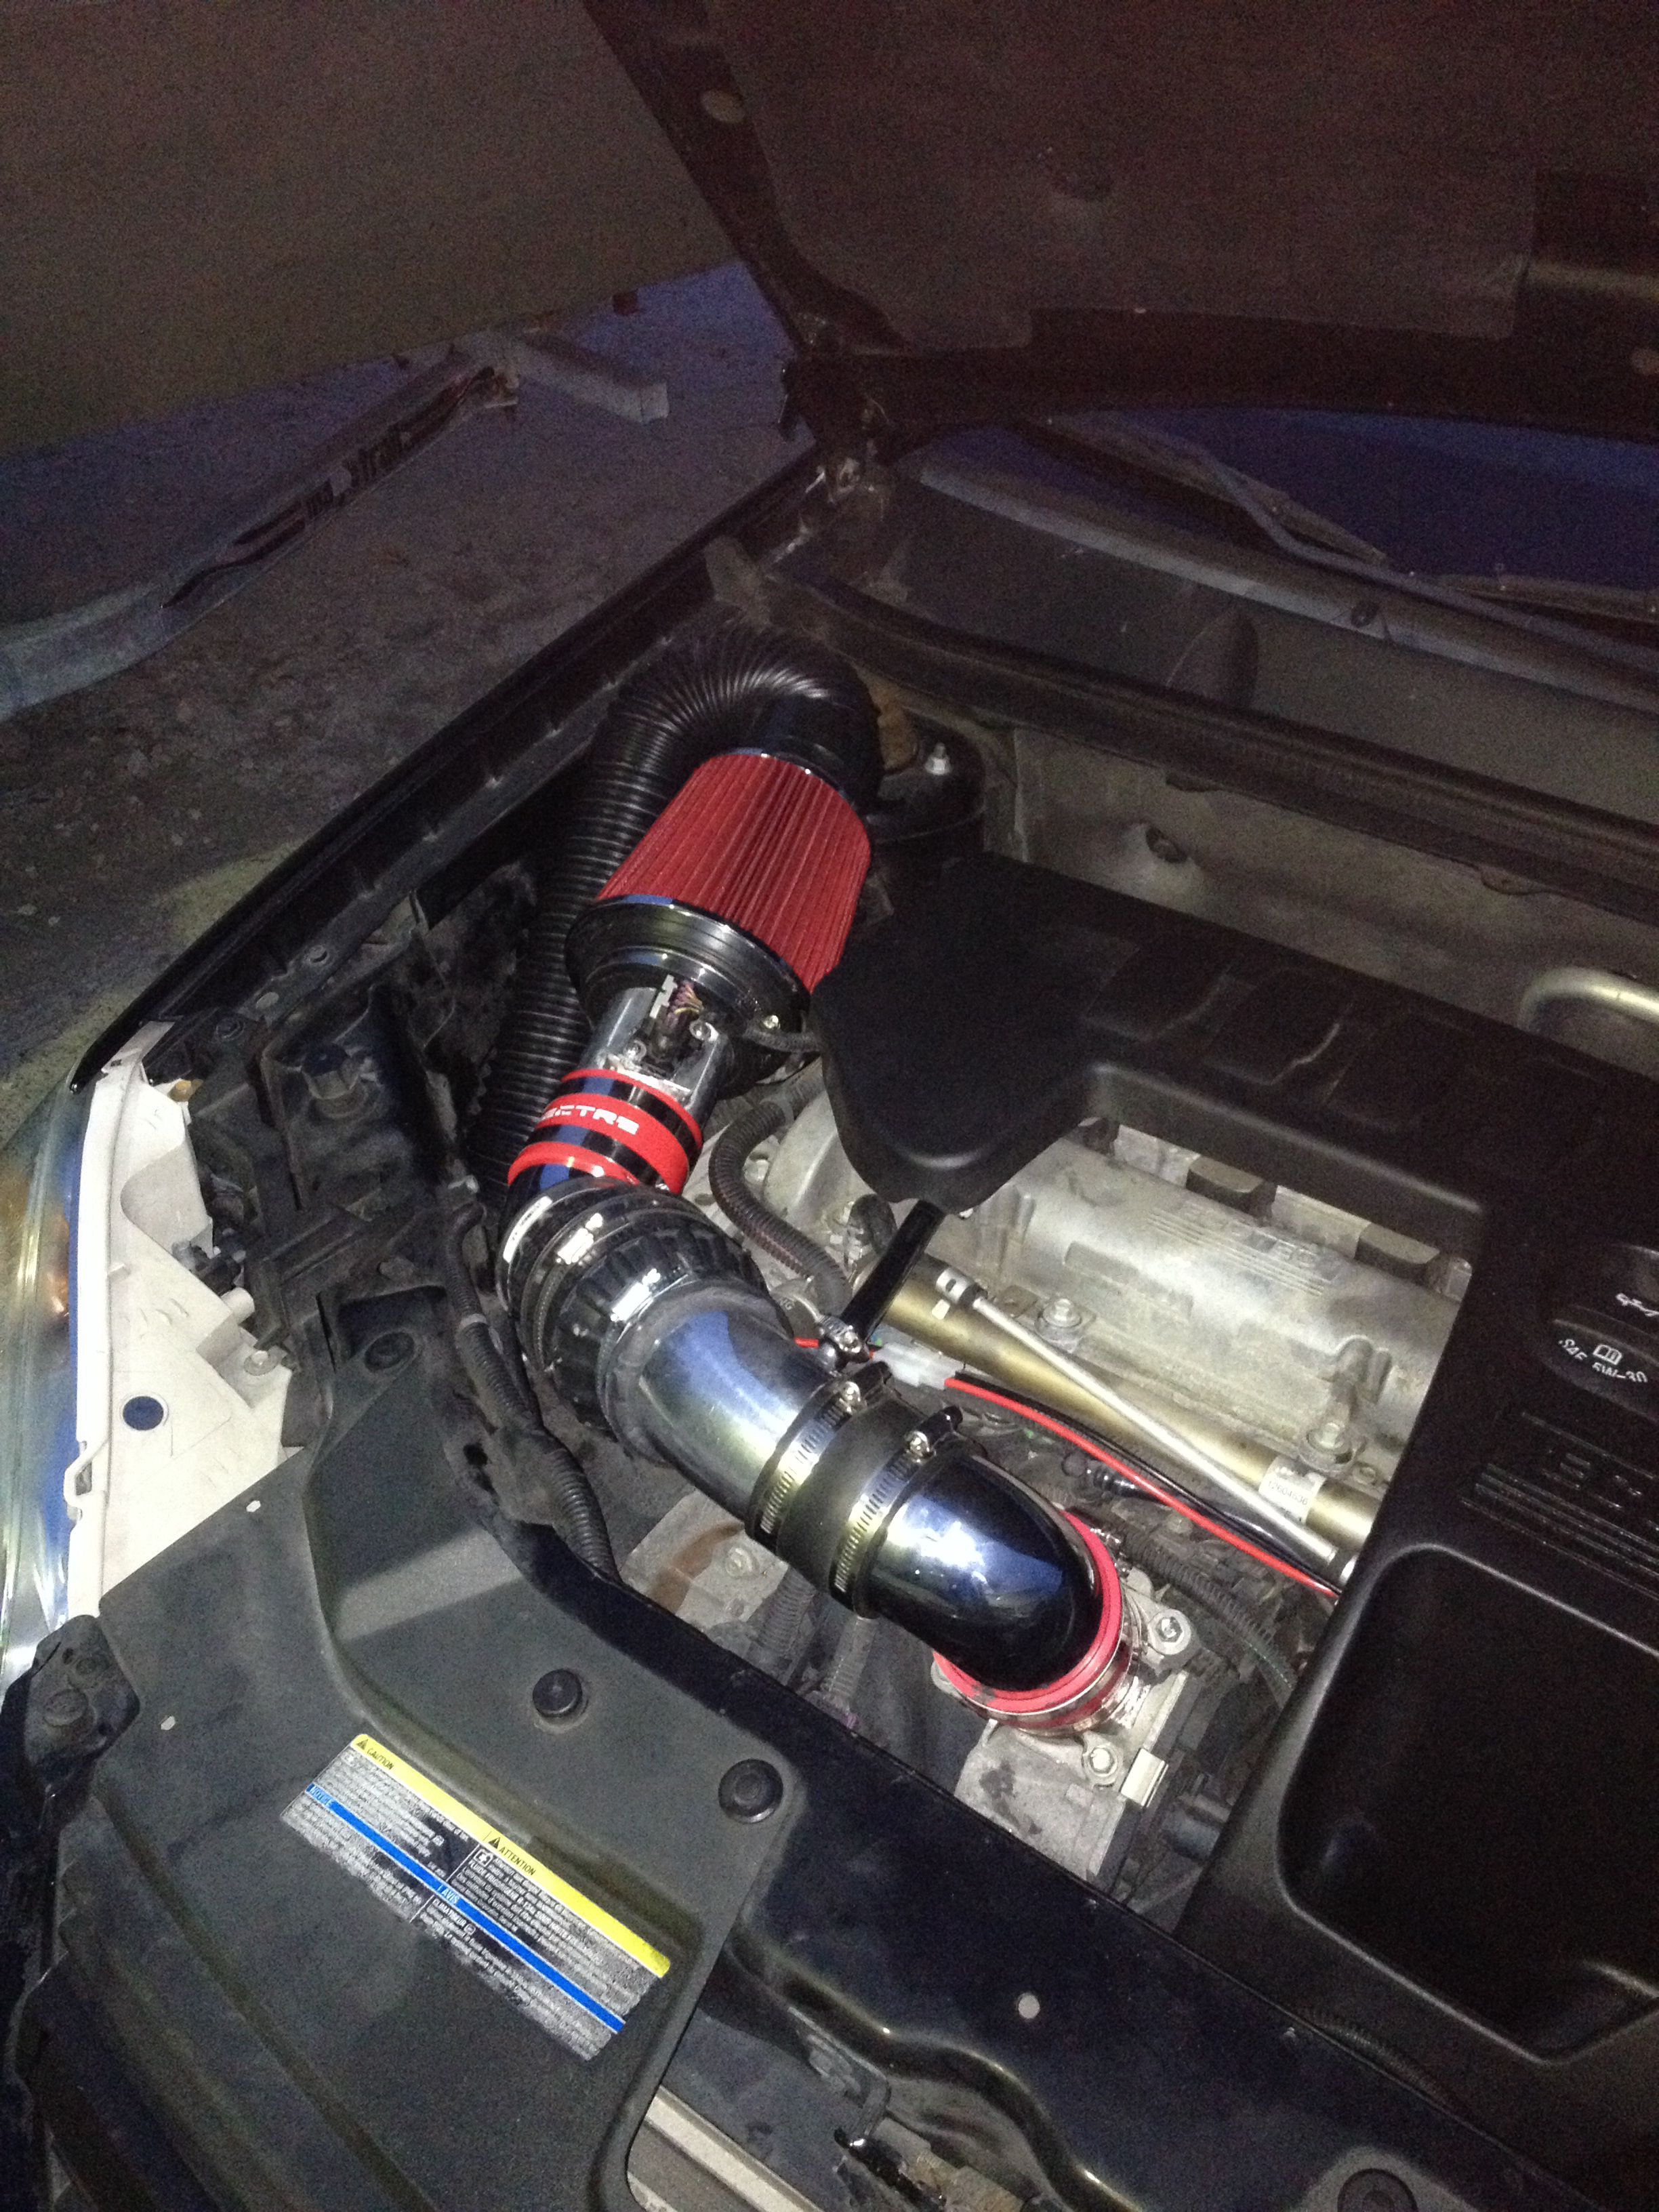 Electric Supercharged Cold Air Intake For My 2007 Chevy Cobalt Ls